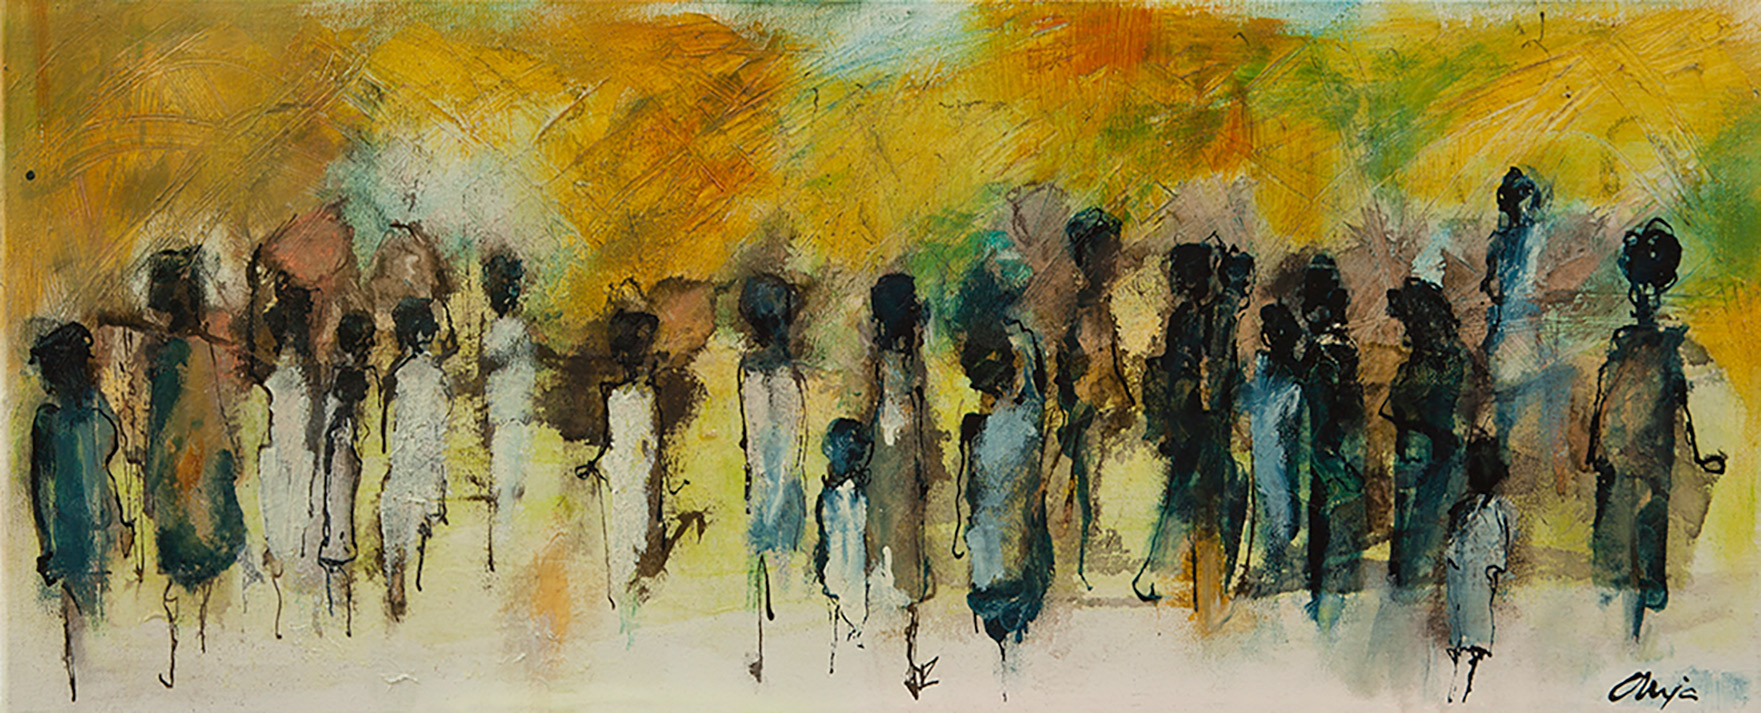 paintings anja oldenburg 11 liggend